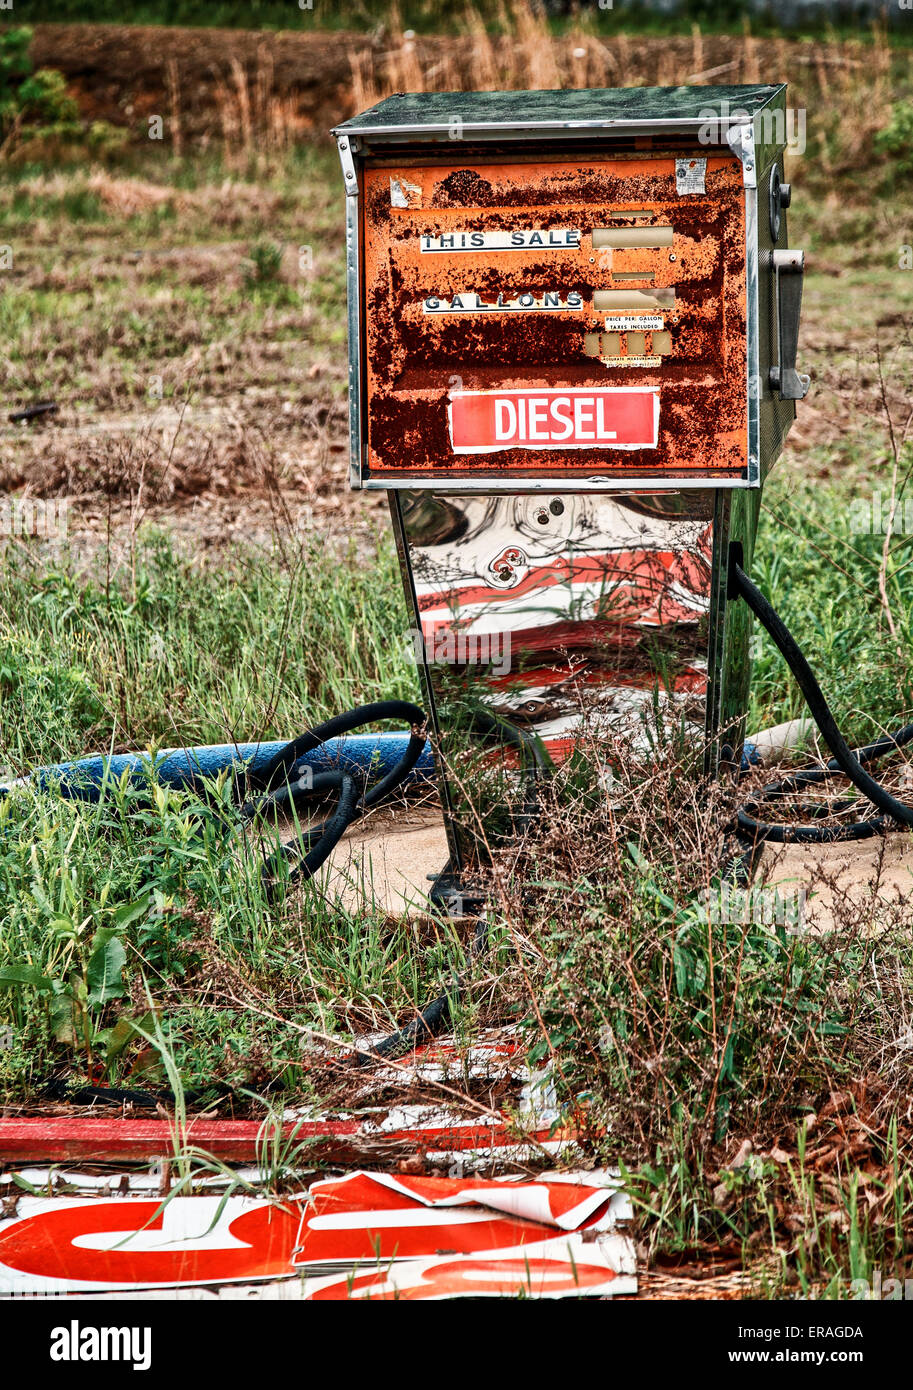 Gutted diesel pump at an abandoned gas station and restaurant. - Stock Image